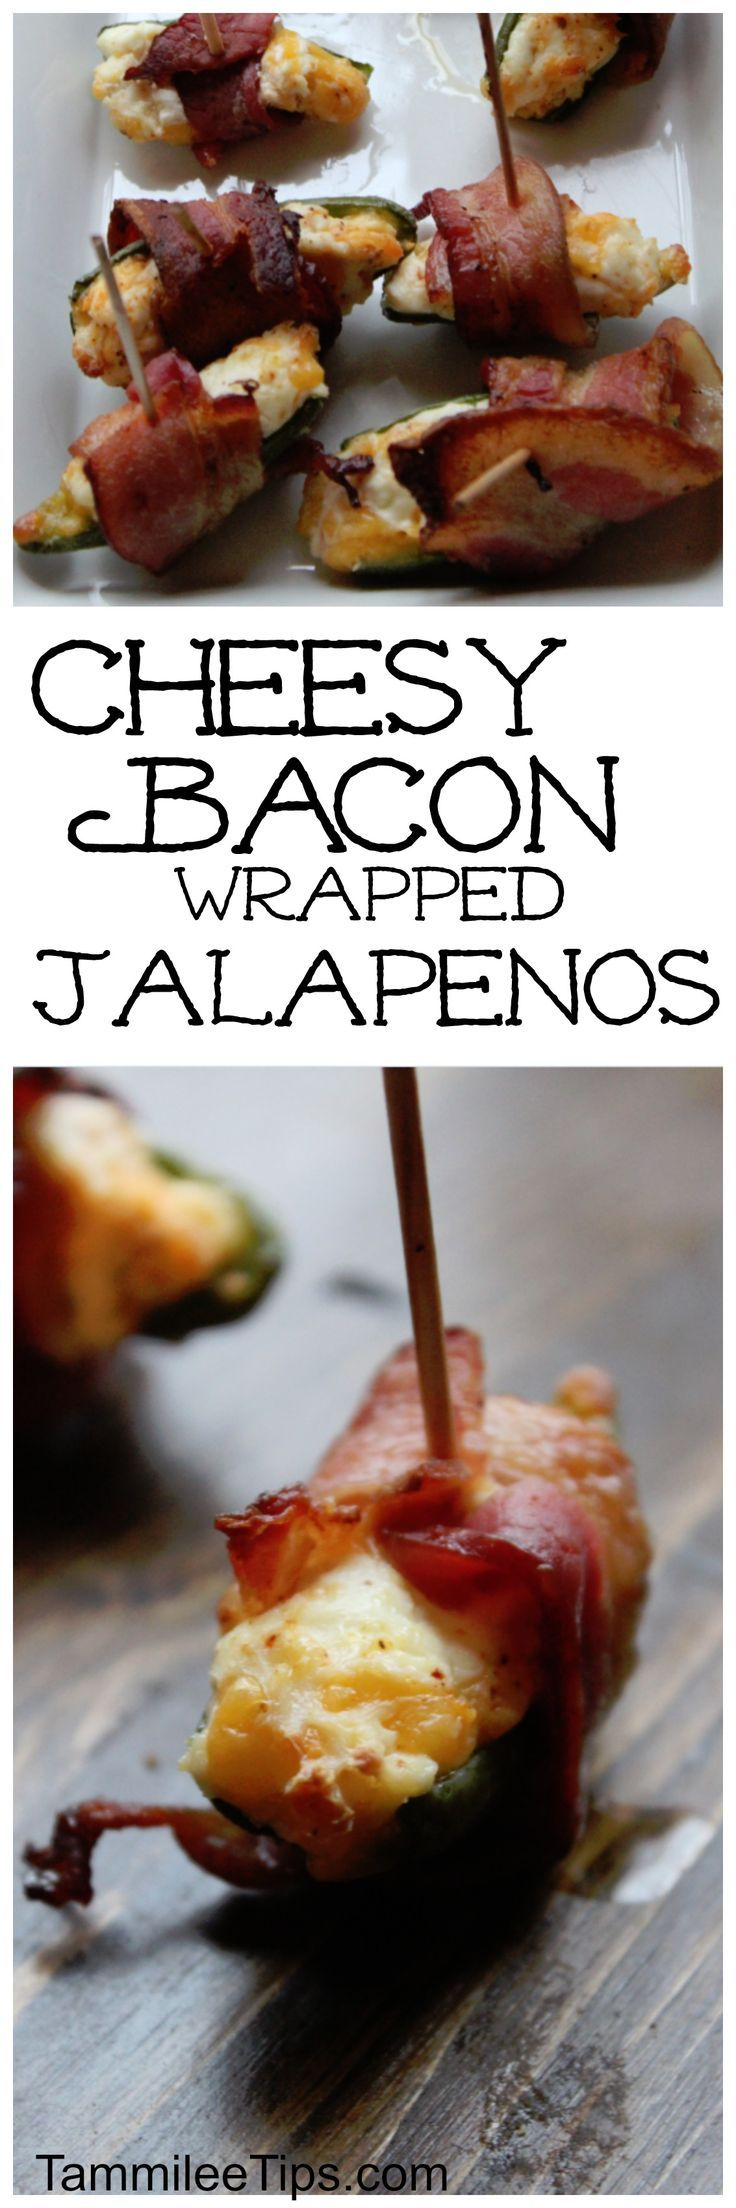 Cheesy Bacon Wrapped Jalapenos Recipe